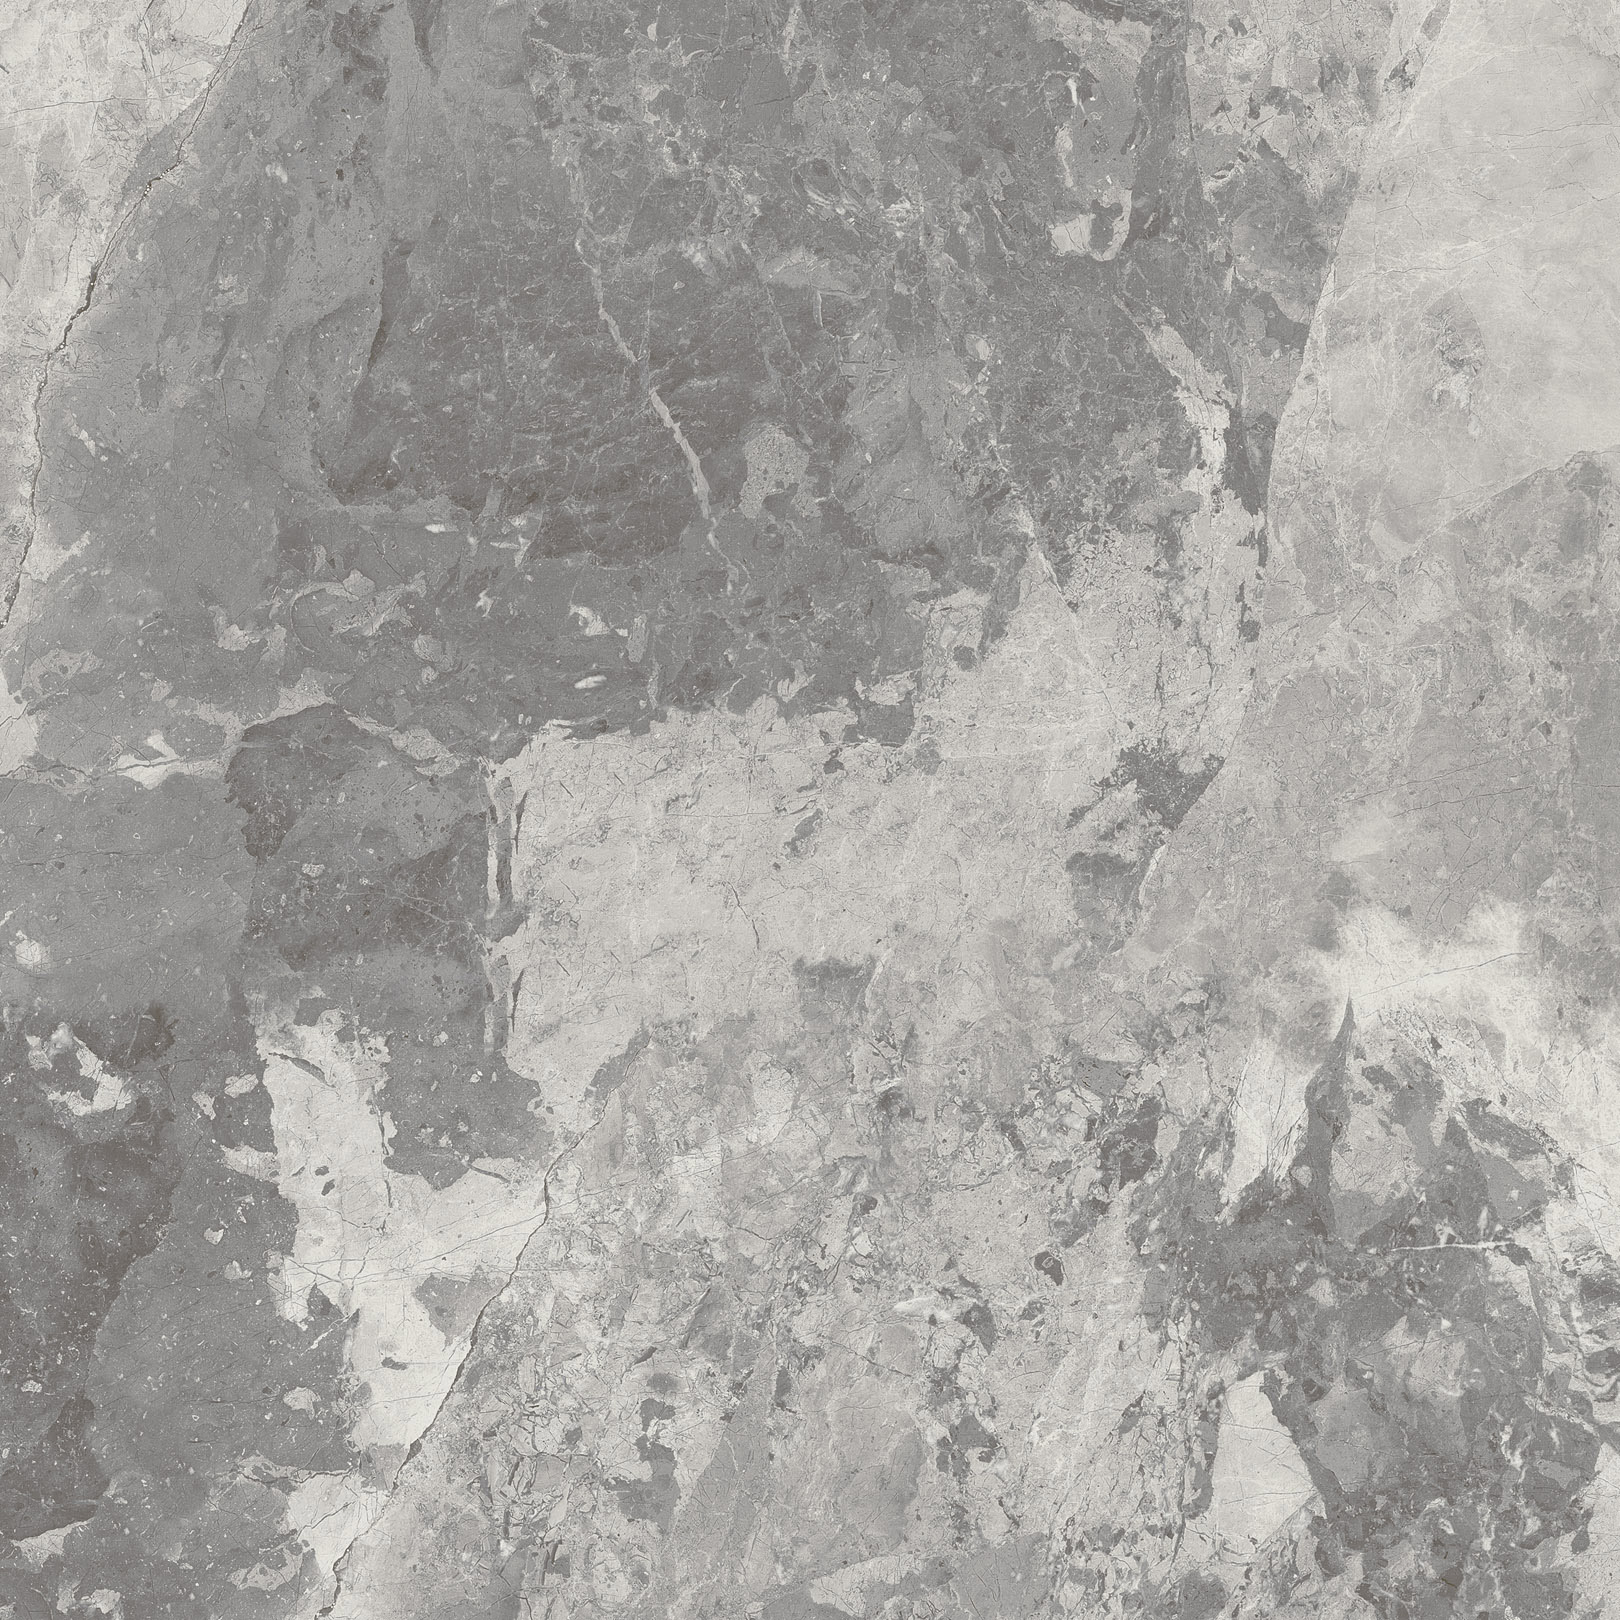 Introducing pietra reale a new marble effect porcelain for Carrelage gris clair brillant